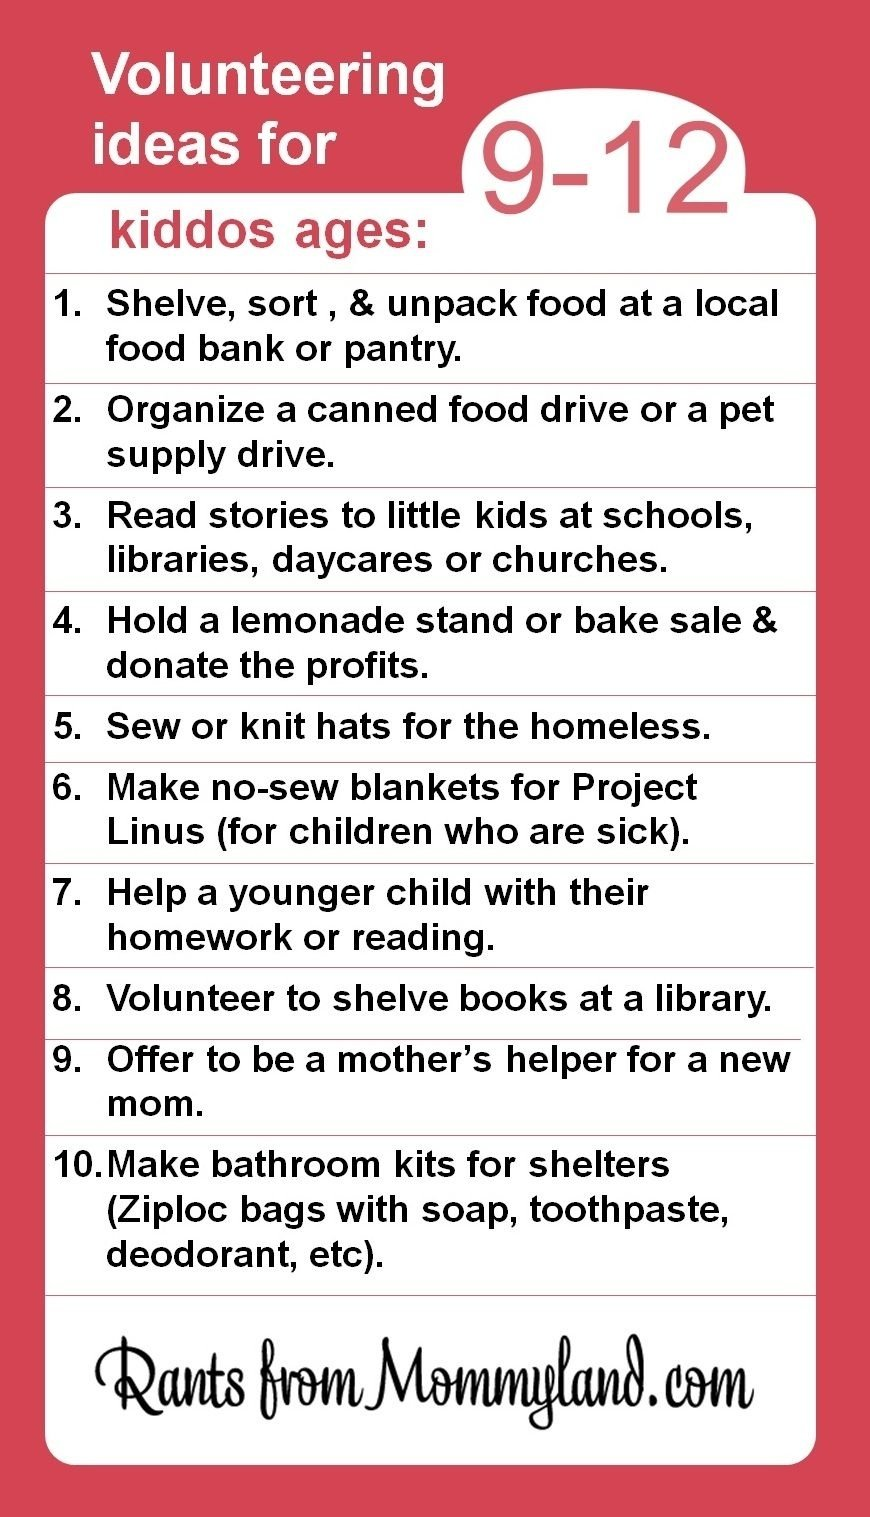 10 Trendy Service Project Ideas For Kids volunteer and service ideas for kiddos ages 9 12 kids can do a lot 3 2020